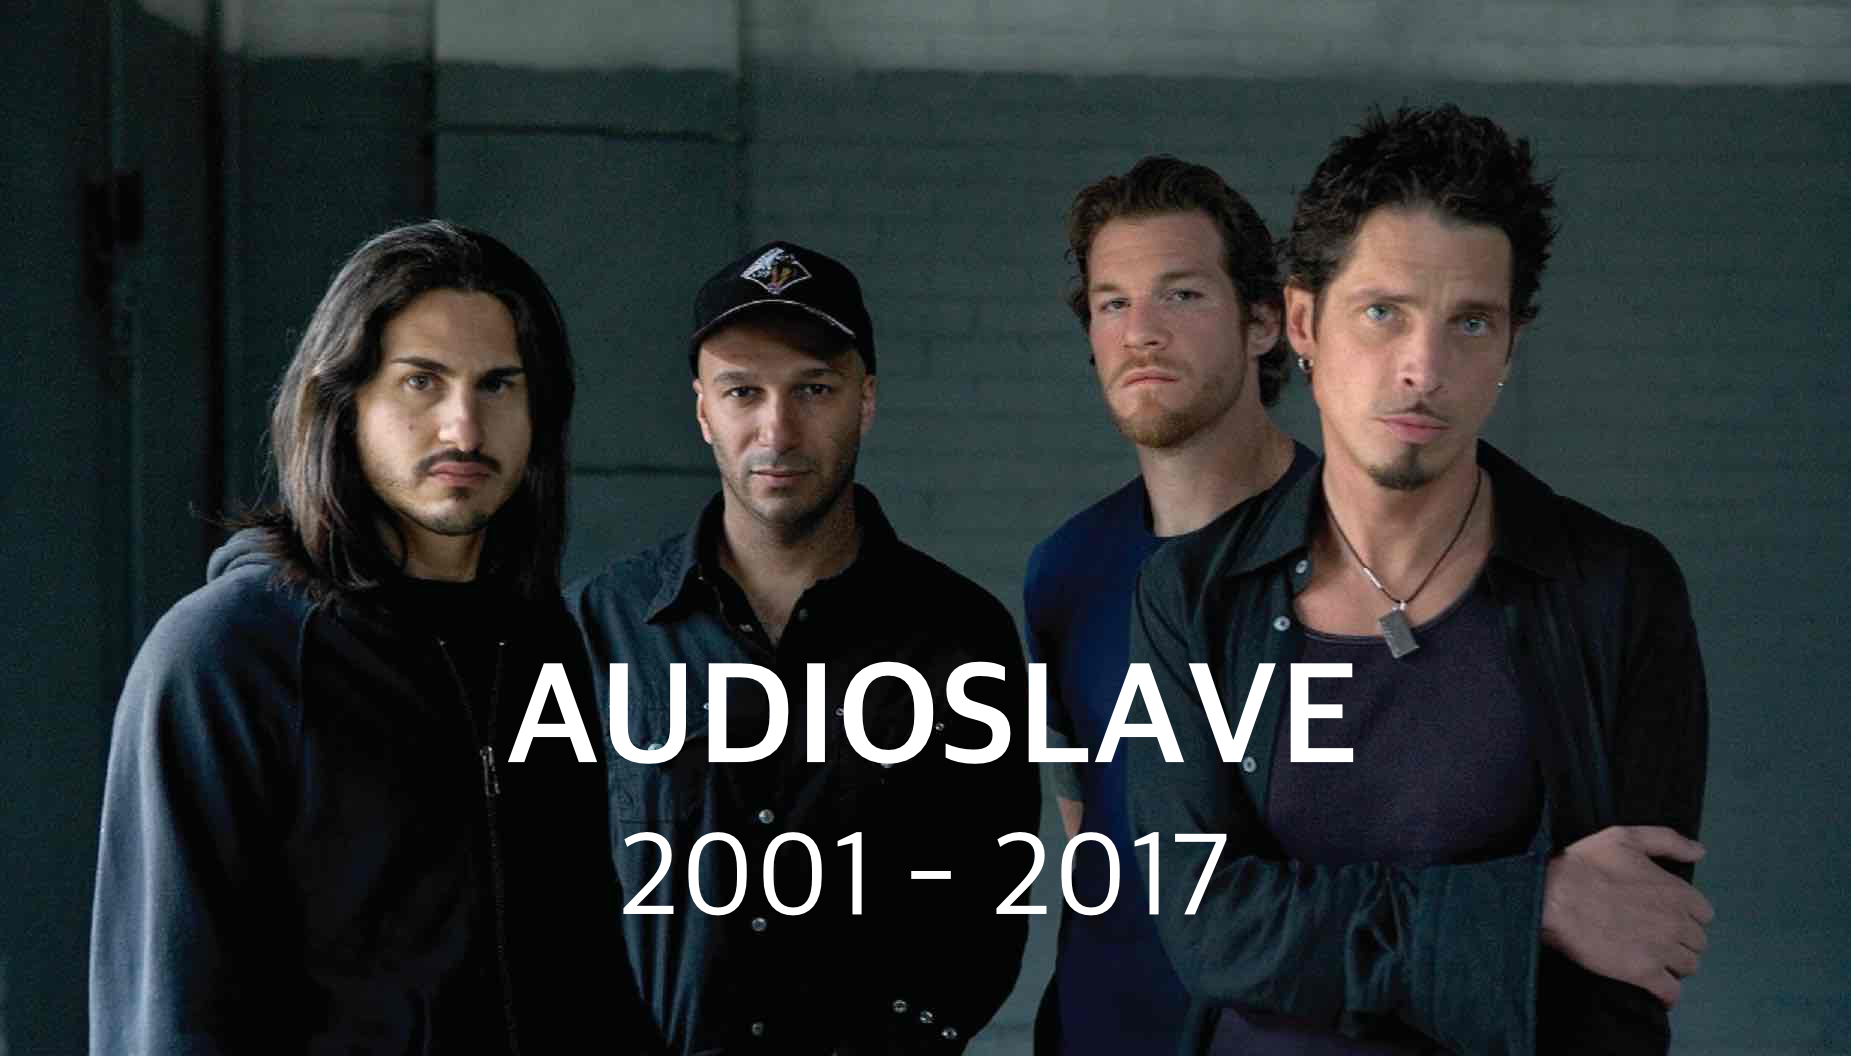 Bands we've lost in 2017: Audioslave